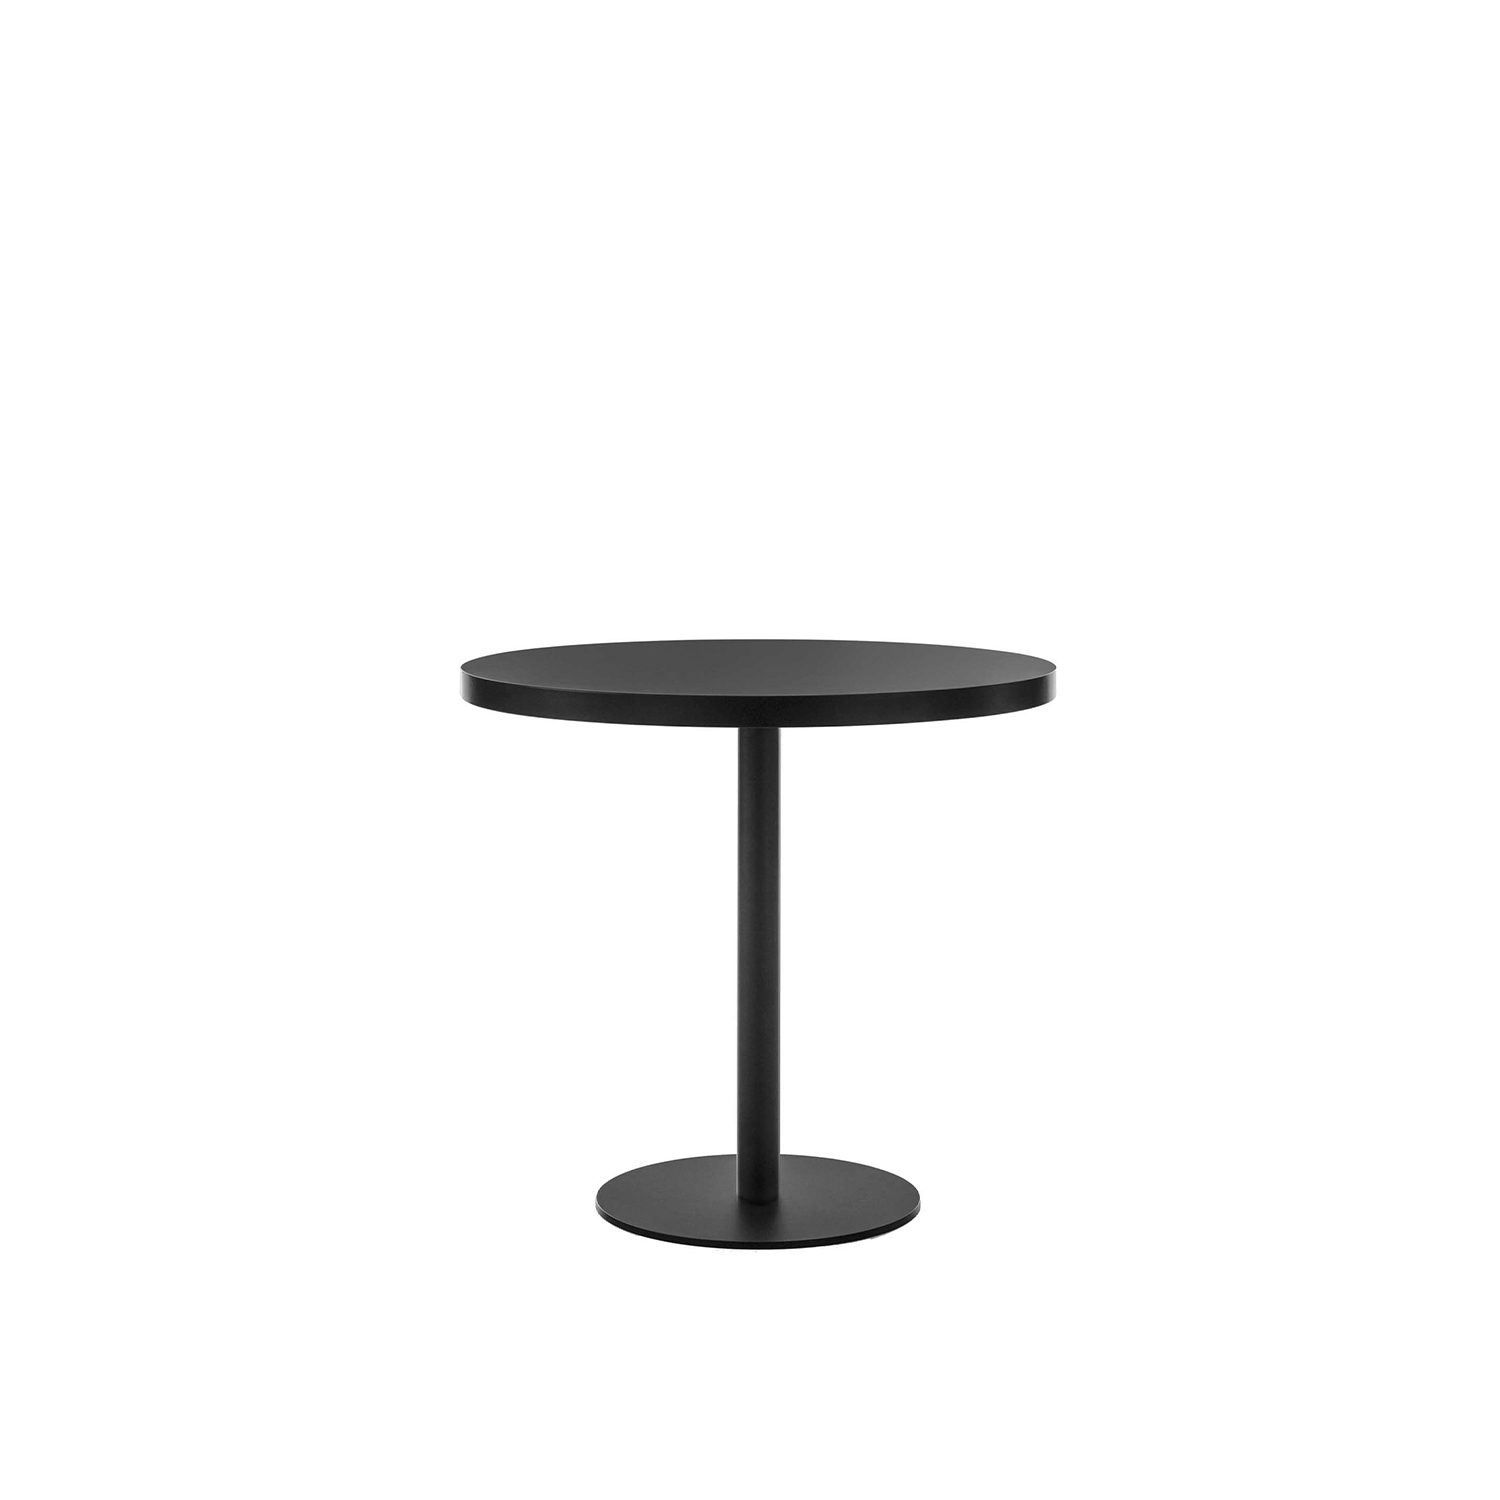 Porto Bar Table - Bar table with round post, top and base. In black painted metal or with bronze finish.